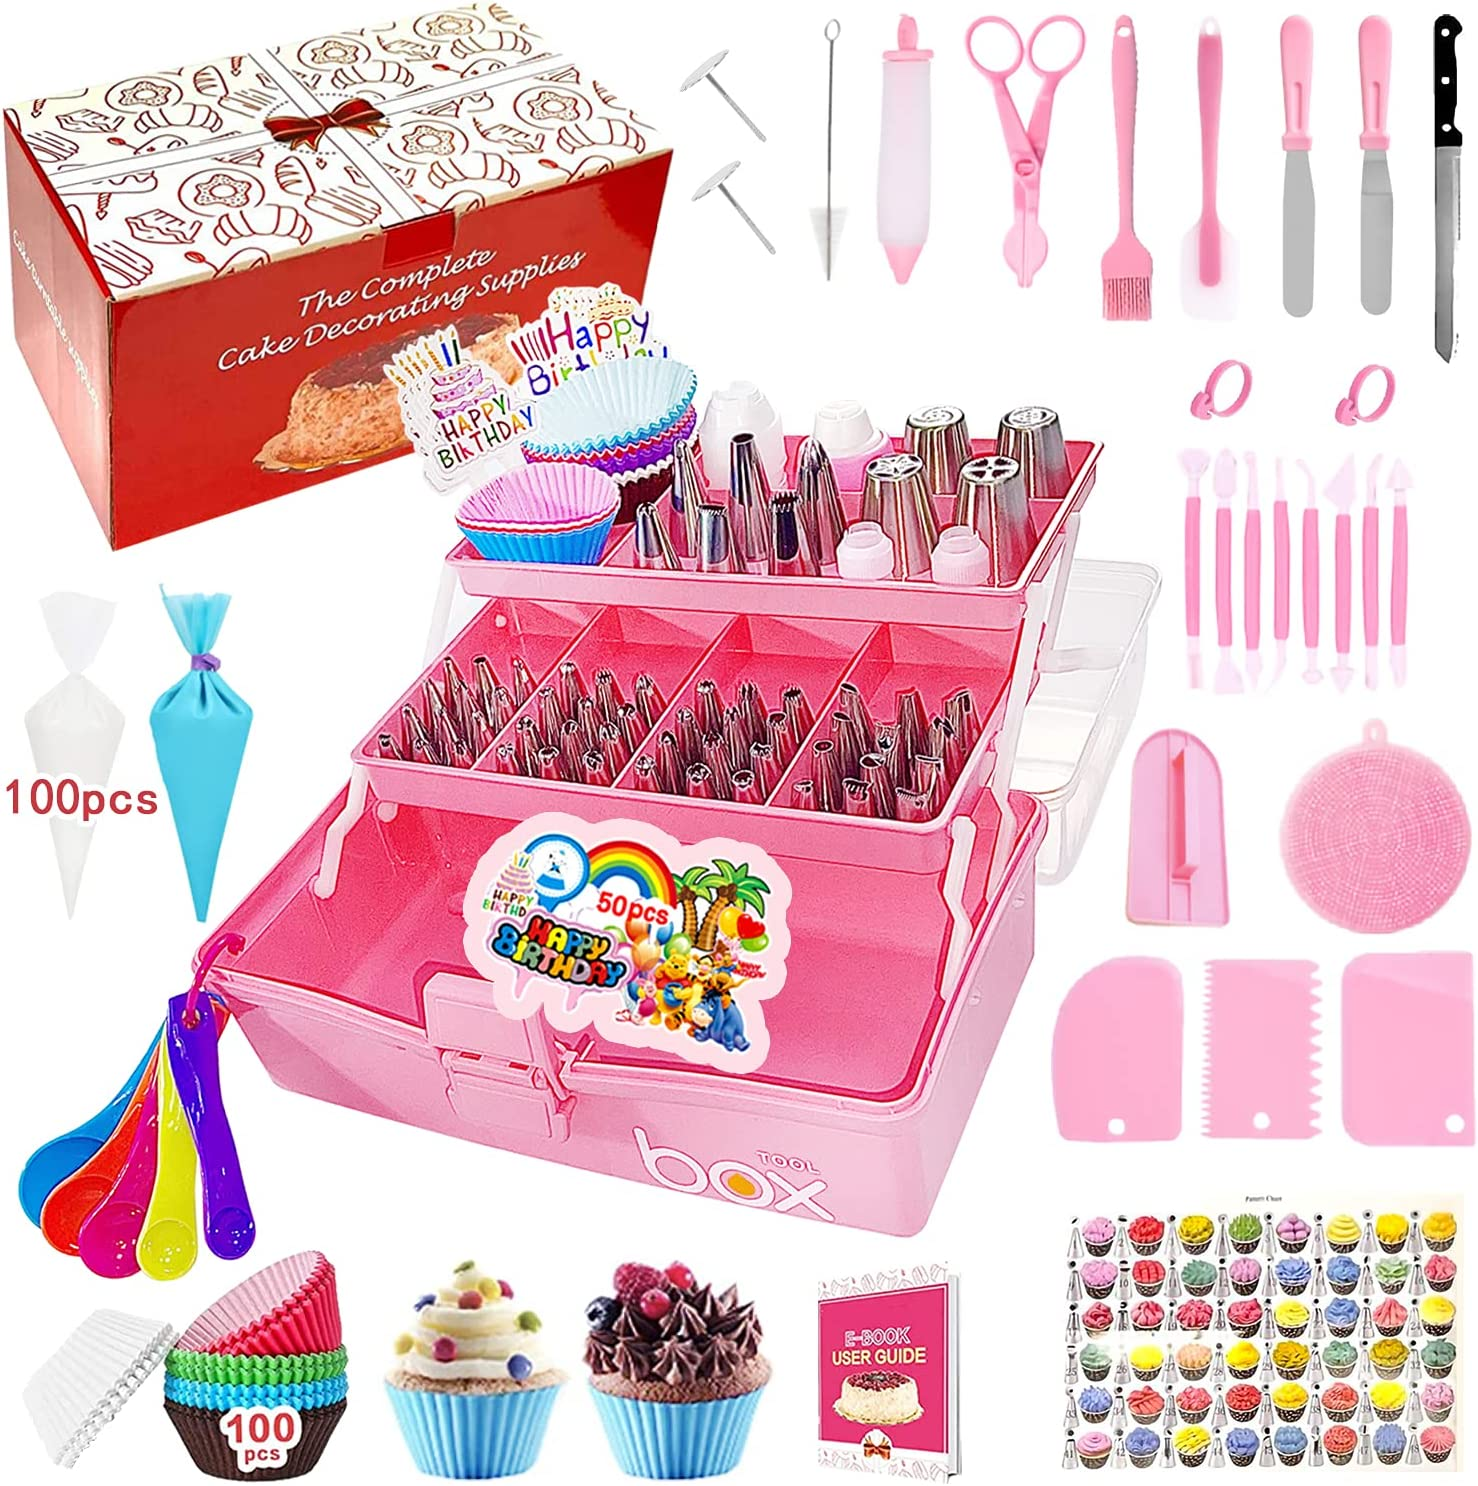 Fresno Mall Cake specialty shop Decorating Supplies 351-Piece Piping and Set Tips Bags